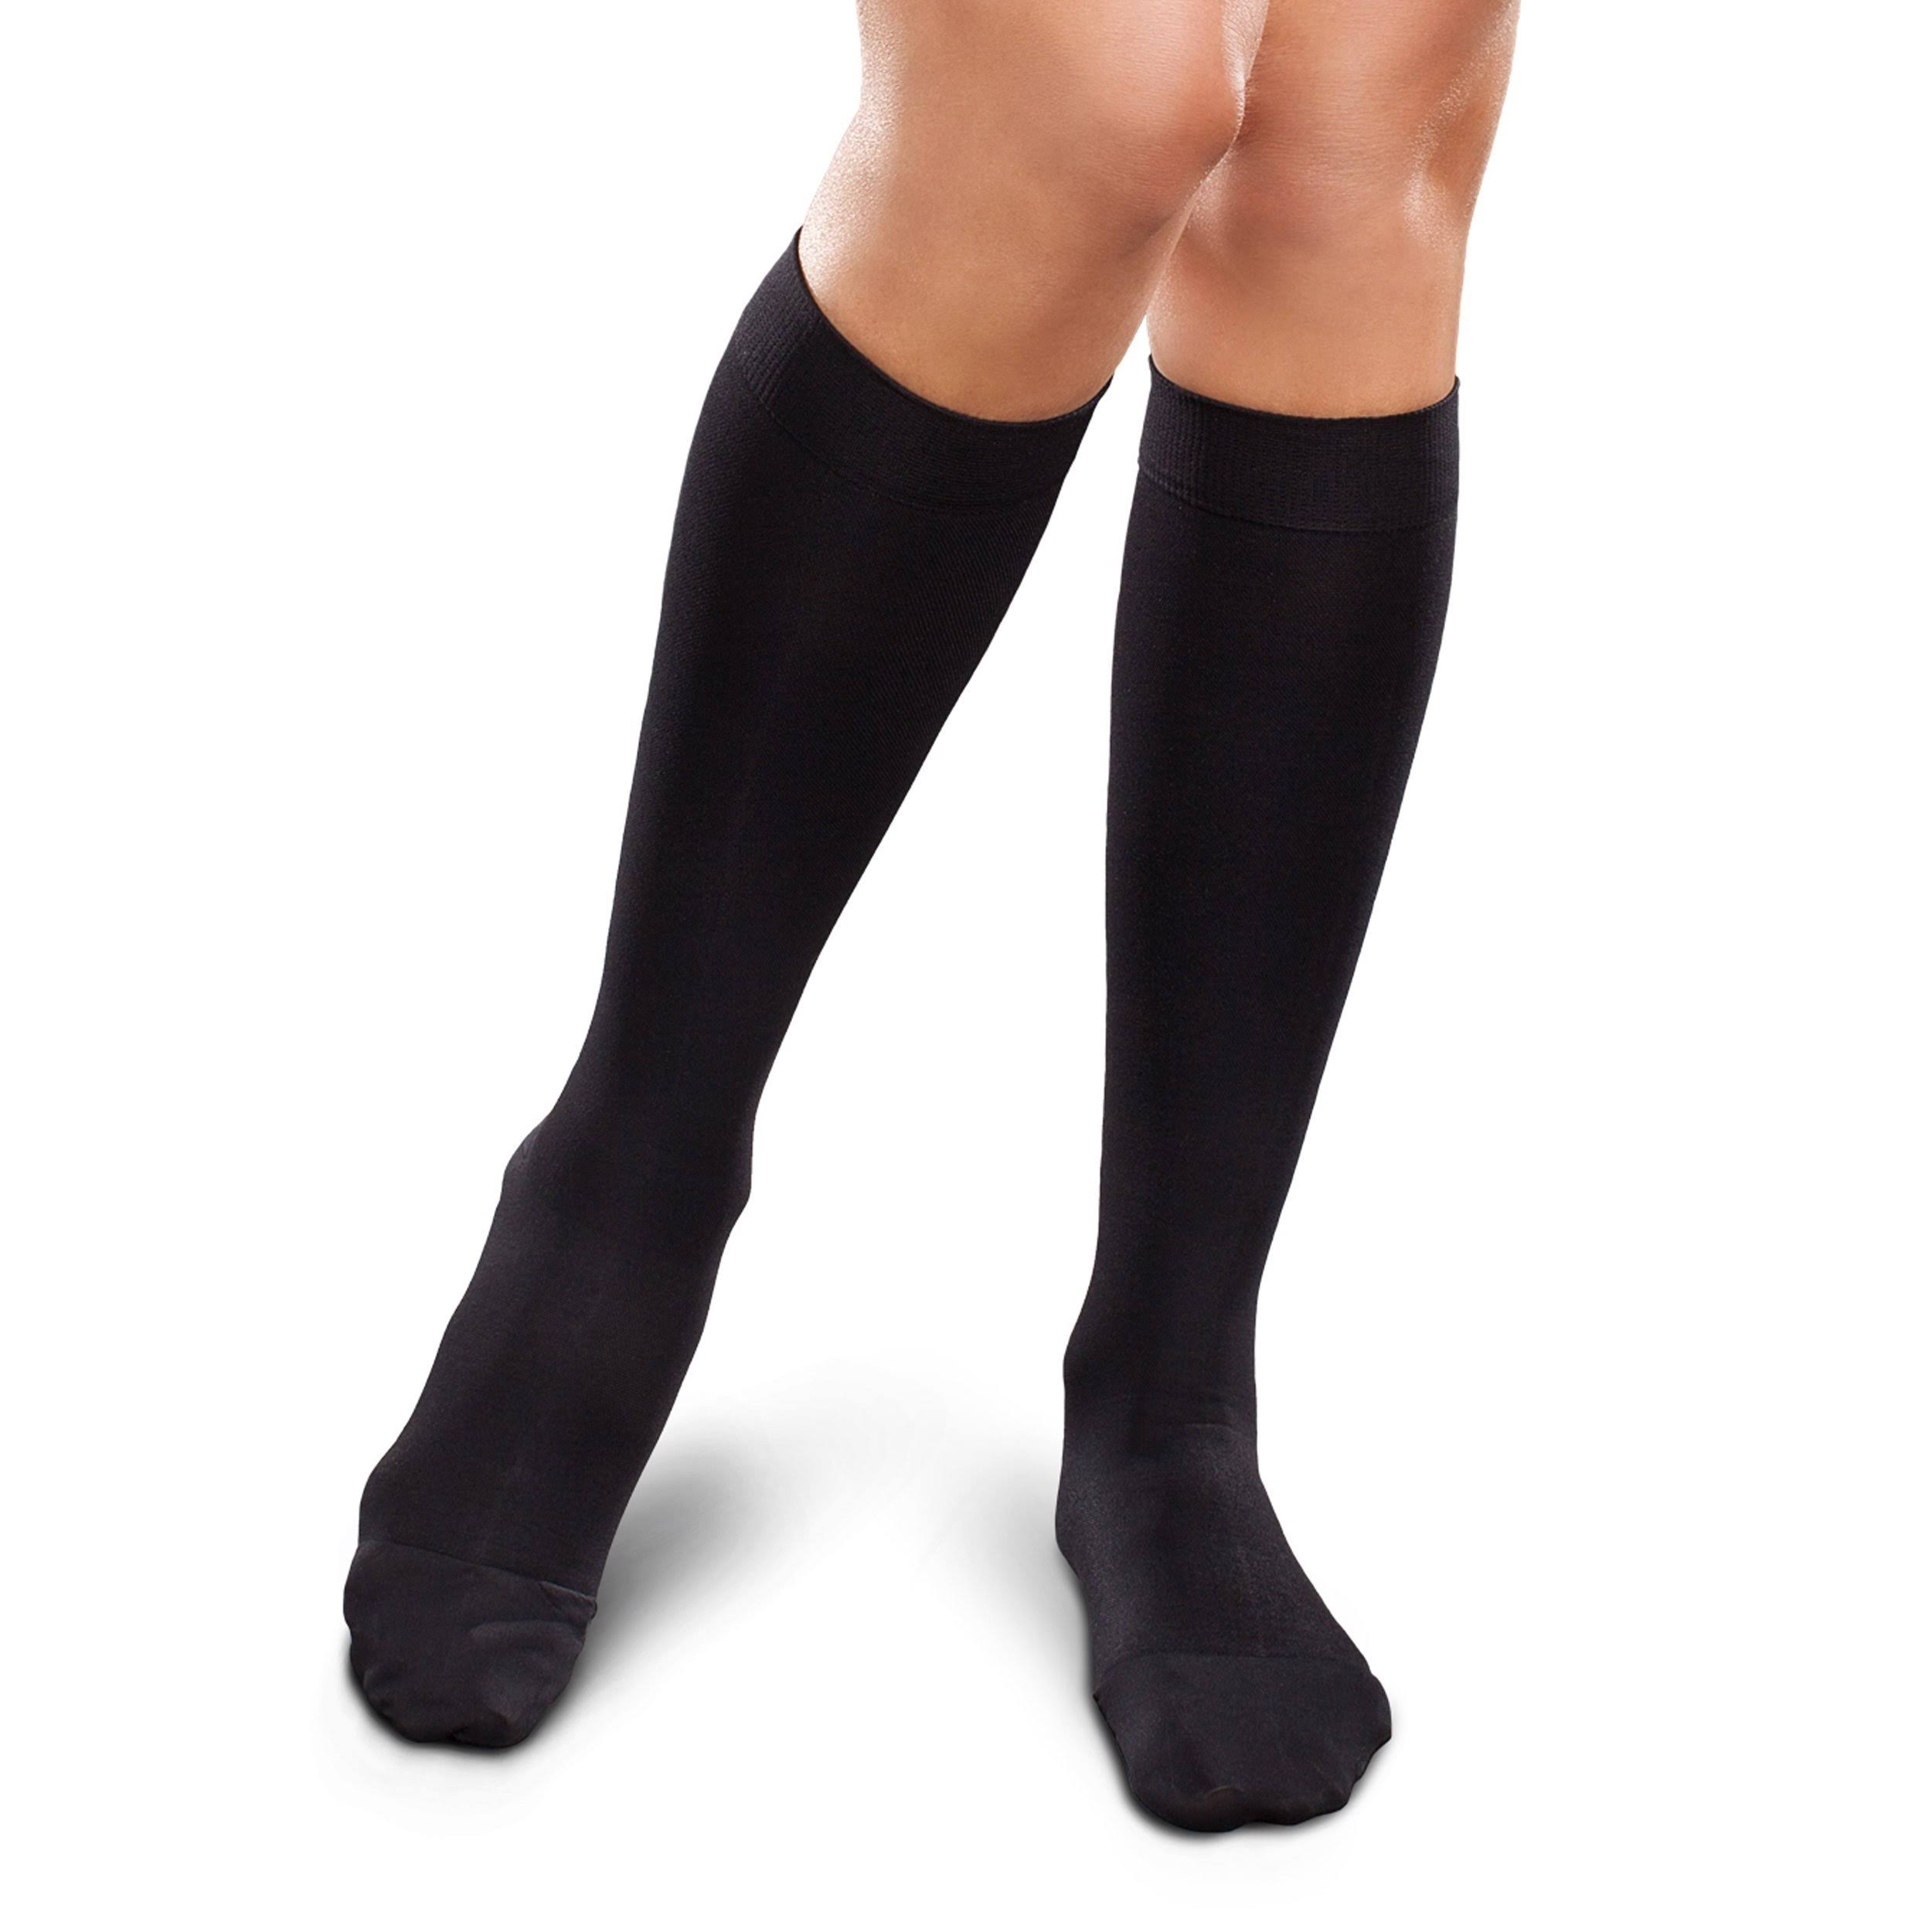 Therafirm Ease Opaque Women's 20-30mmHg Knee High Large Short / Black